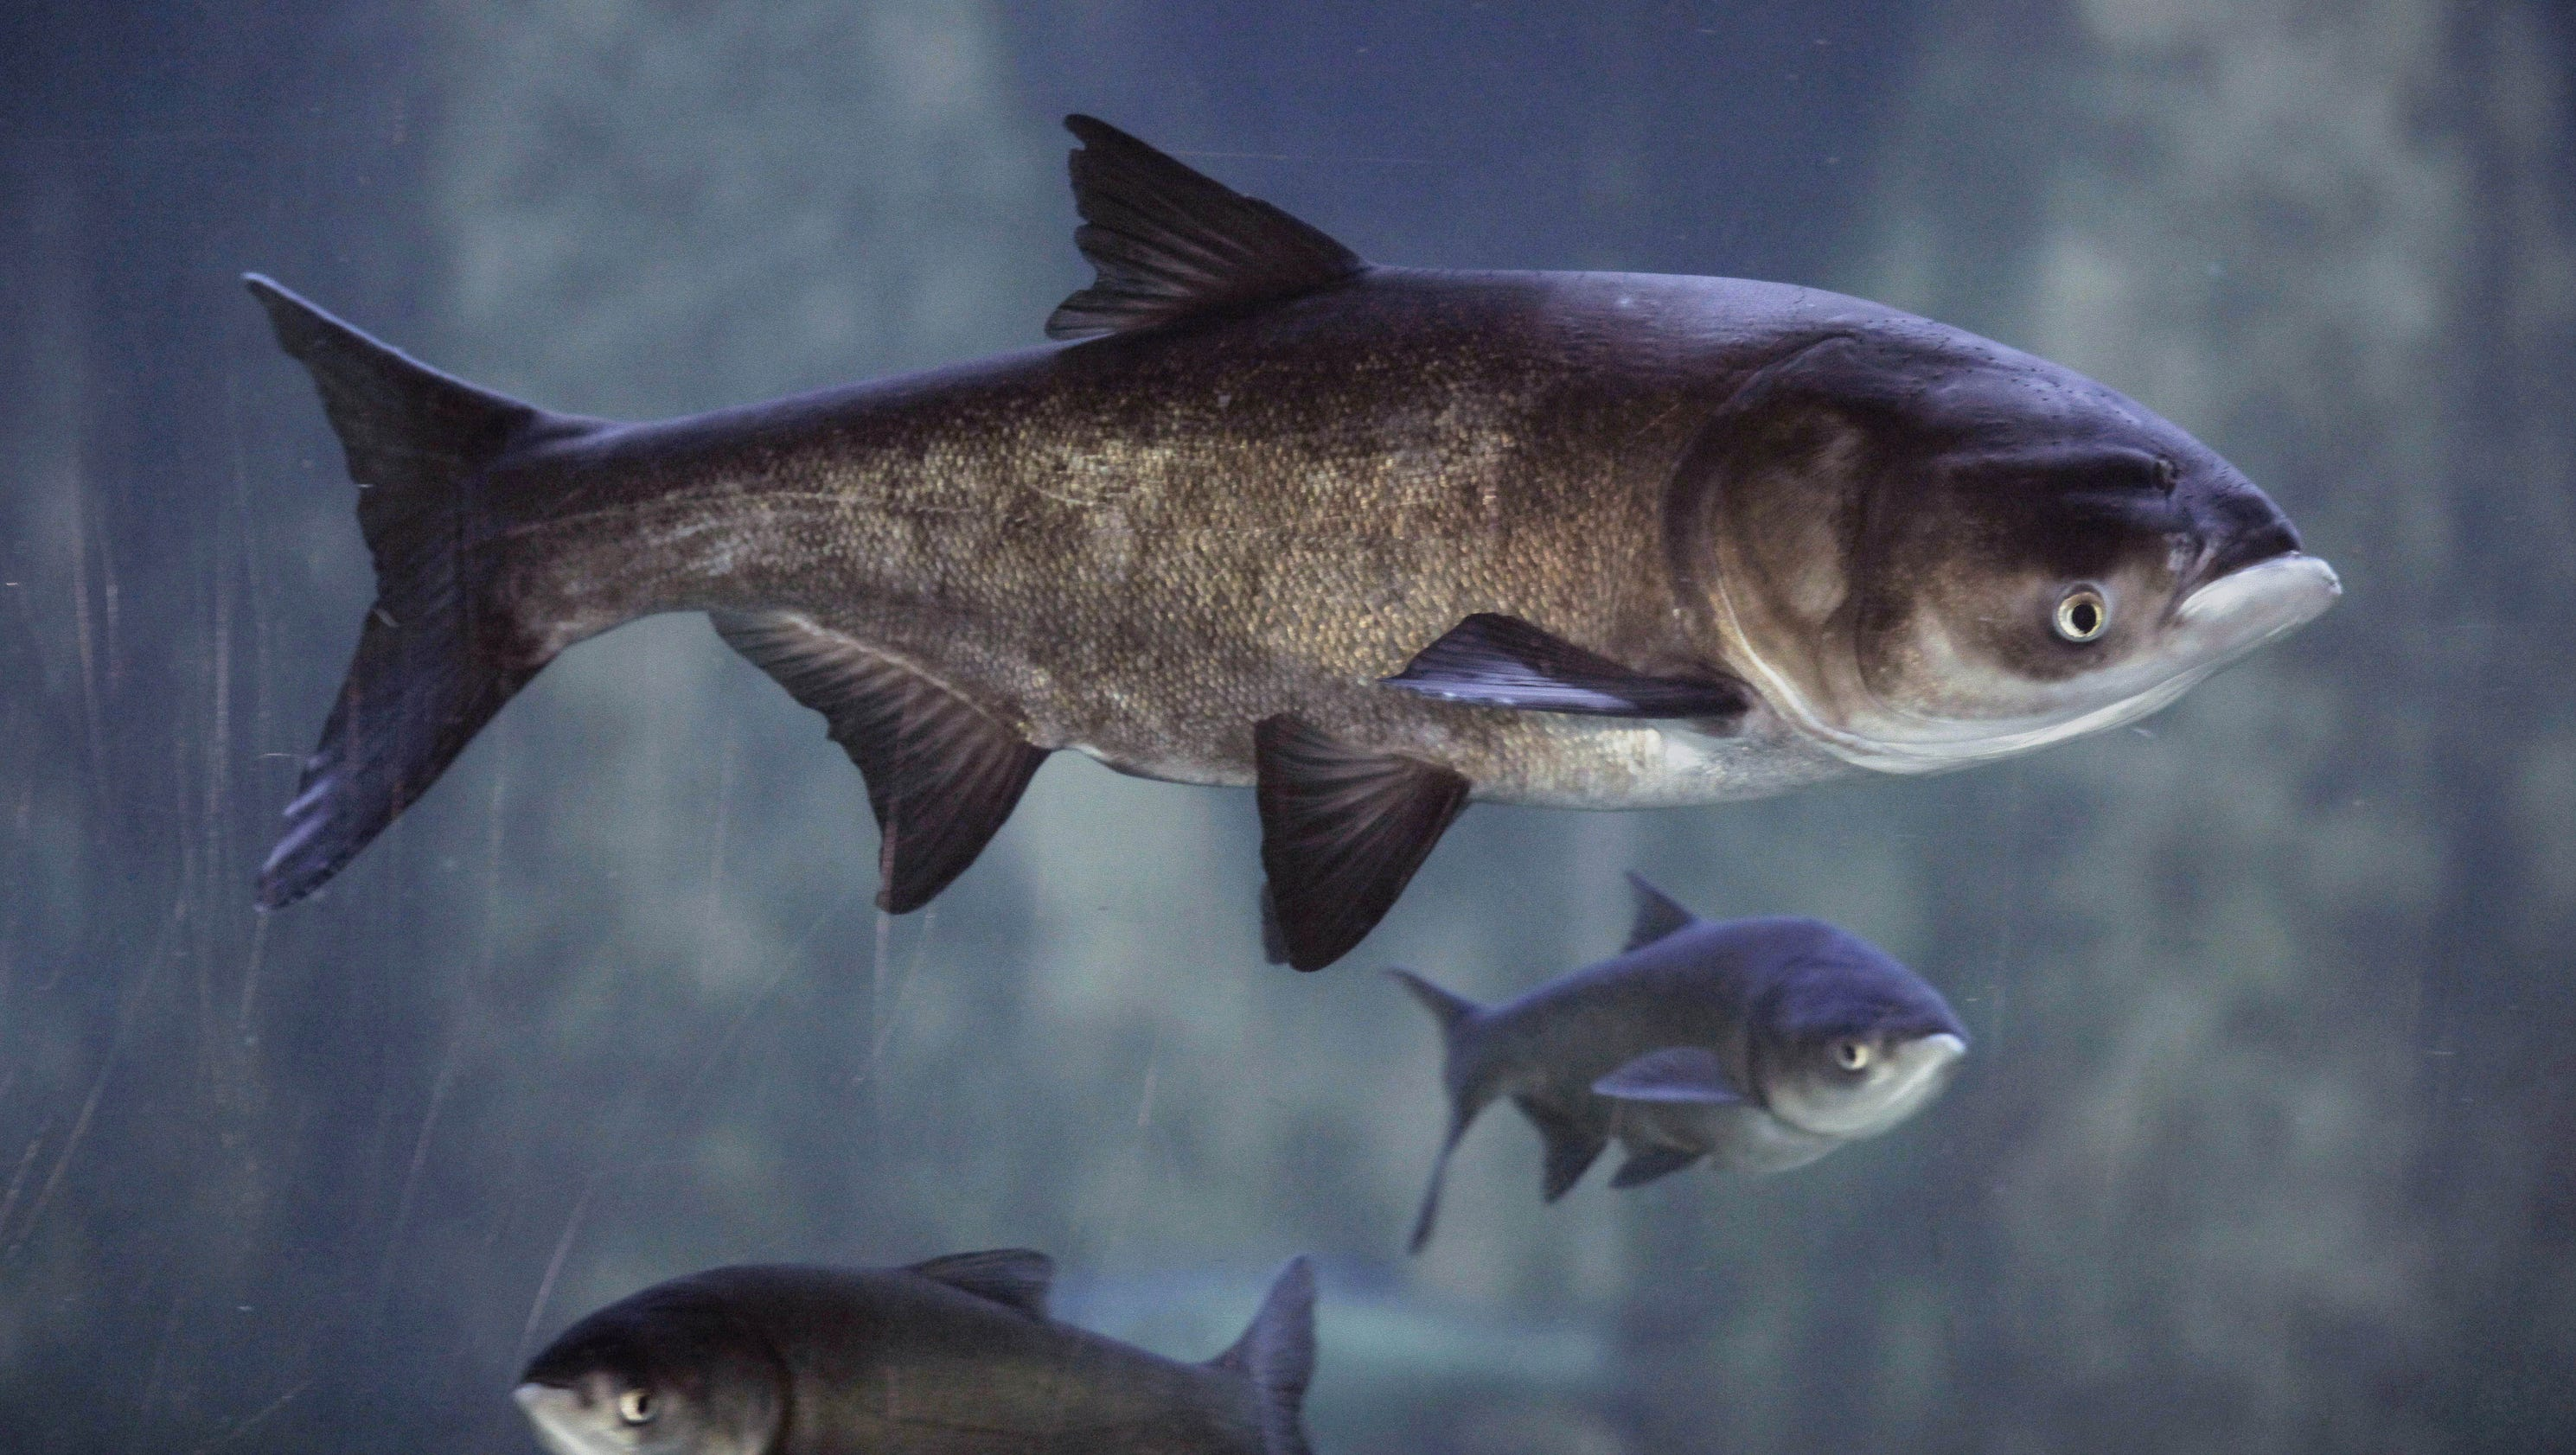 Asian carp in great lakes area